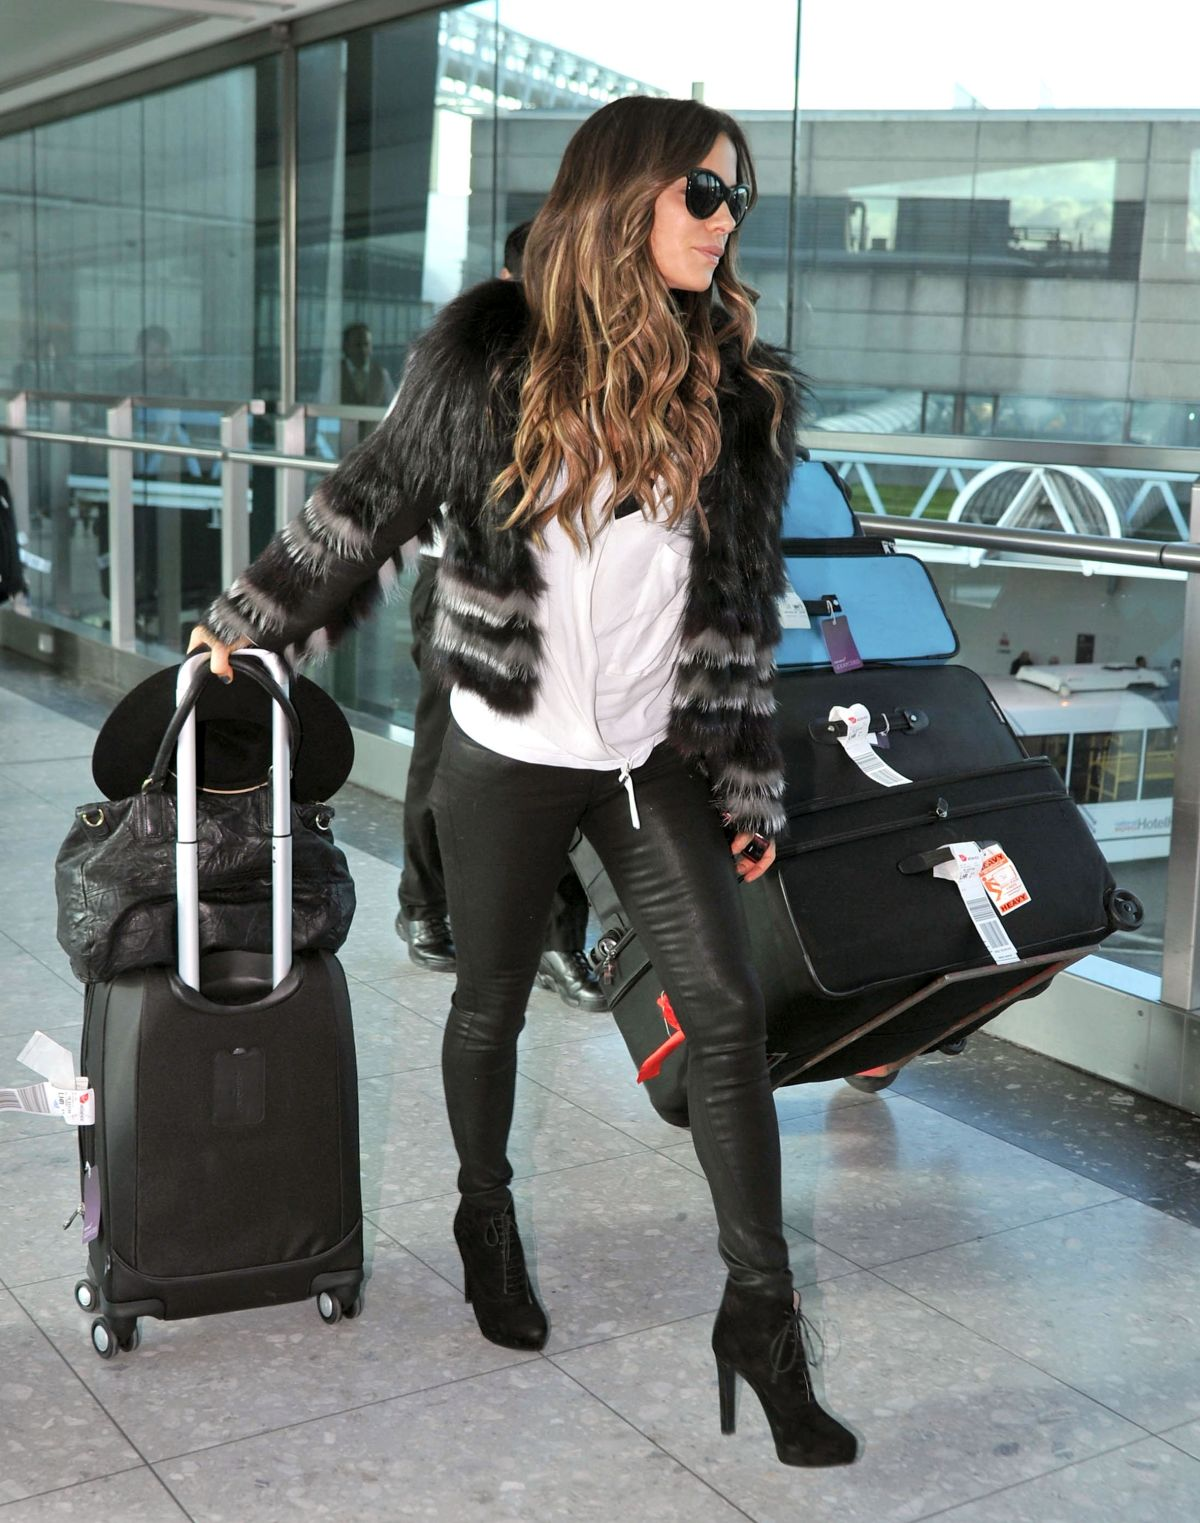 kate-beckinsale-in-skintight-leather-trousers-at-heathrow-airport-in-london_1